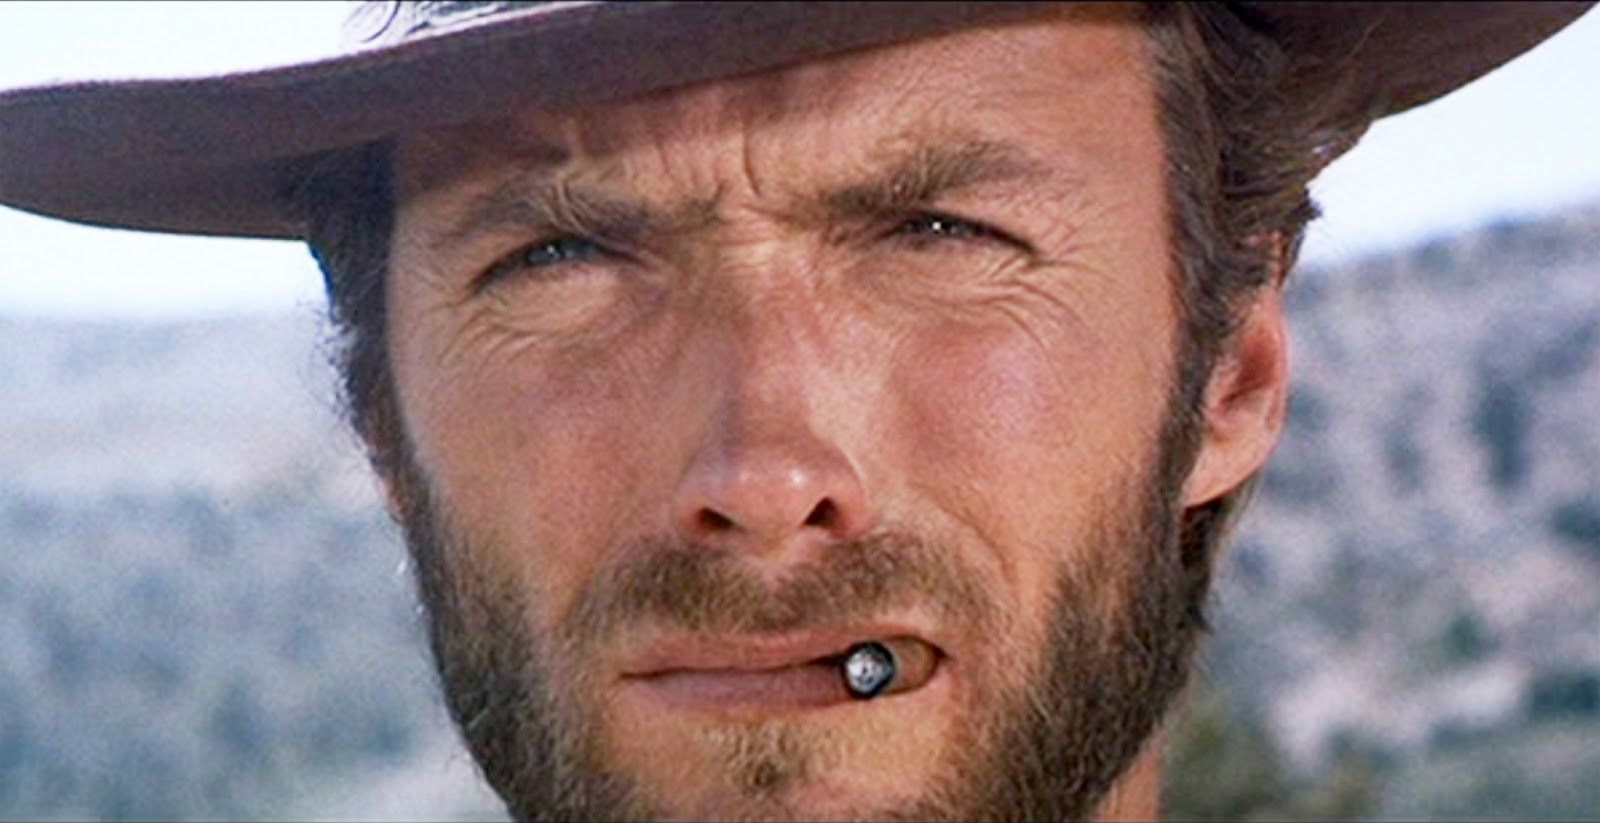 gc67xh4 clint eastwood unknown cache in minnesota united states